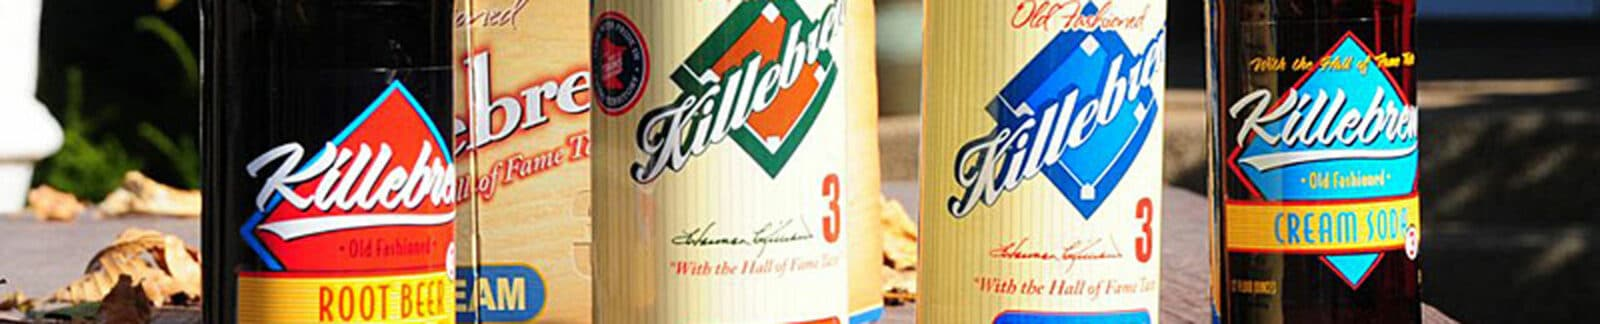 Killebrew Root Beer header